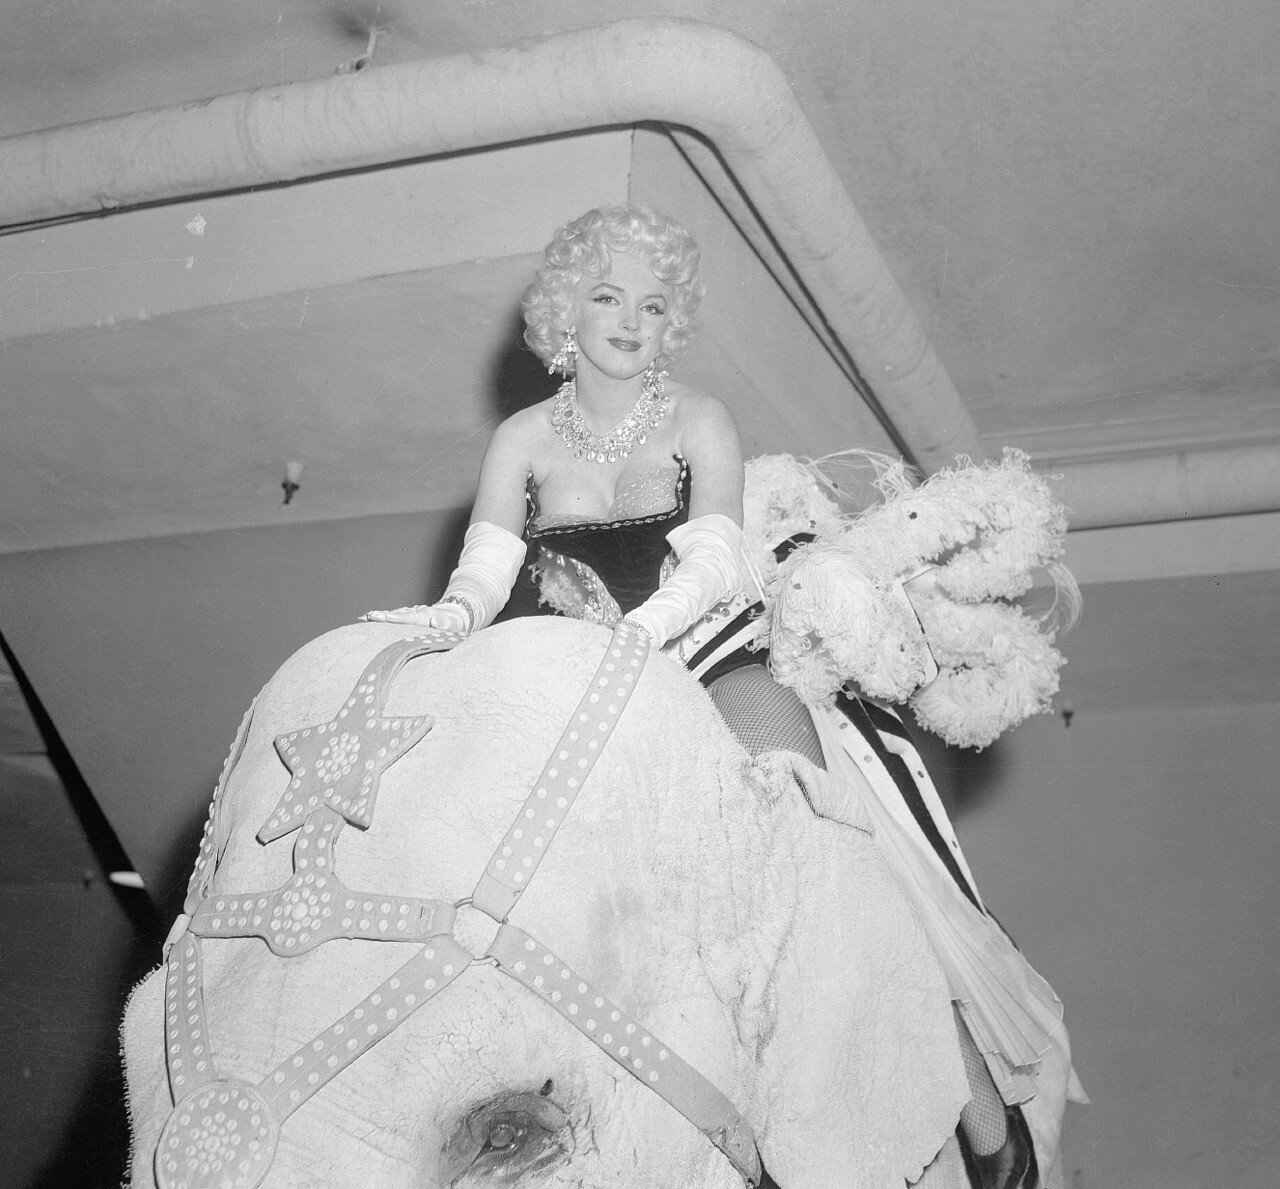 Marilyn Monroe Riding Elephant